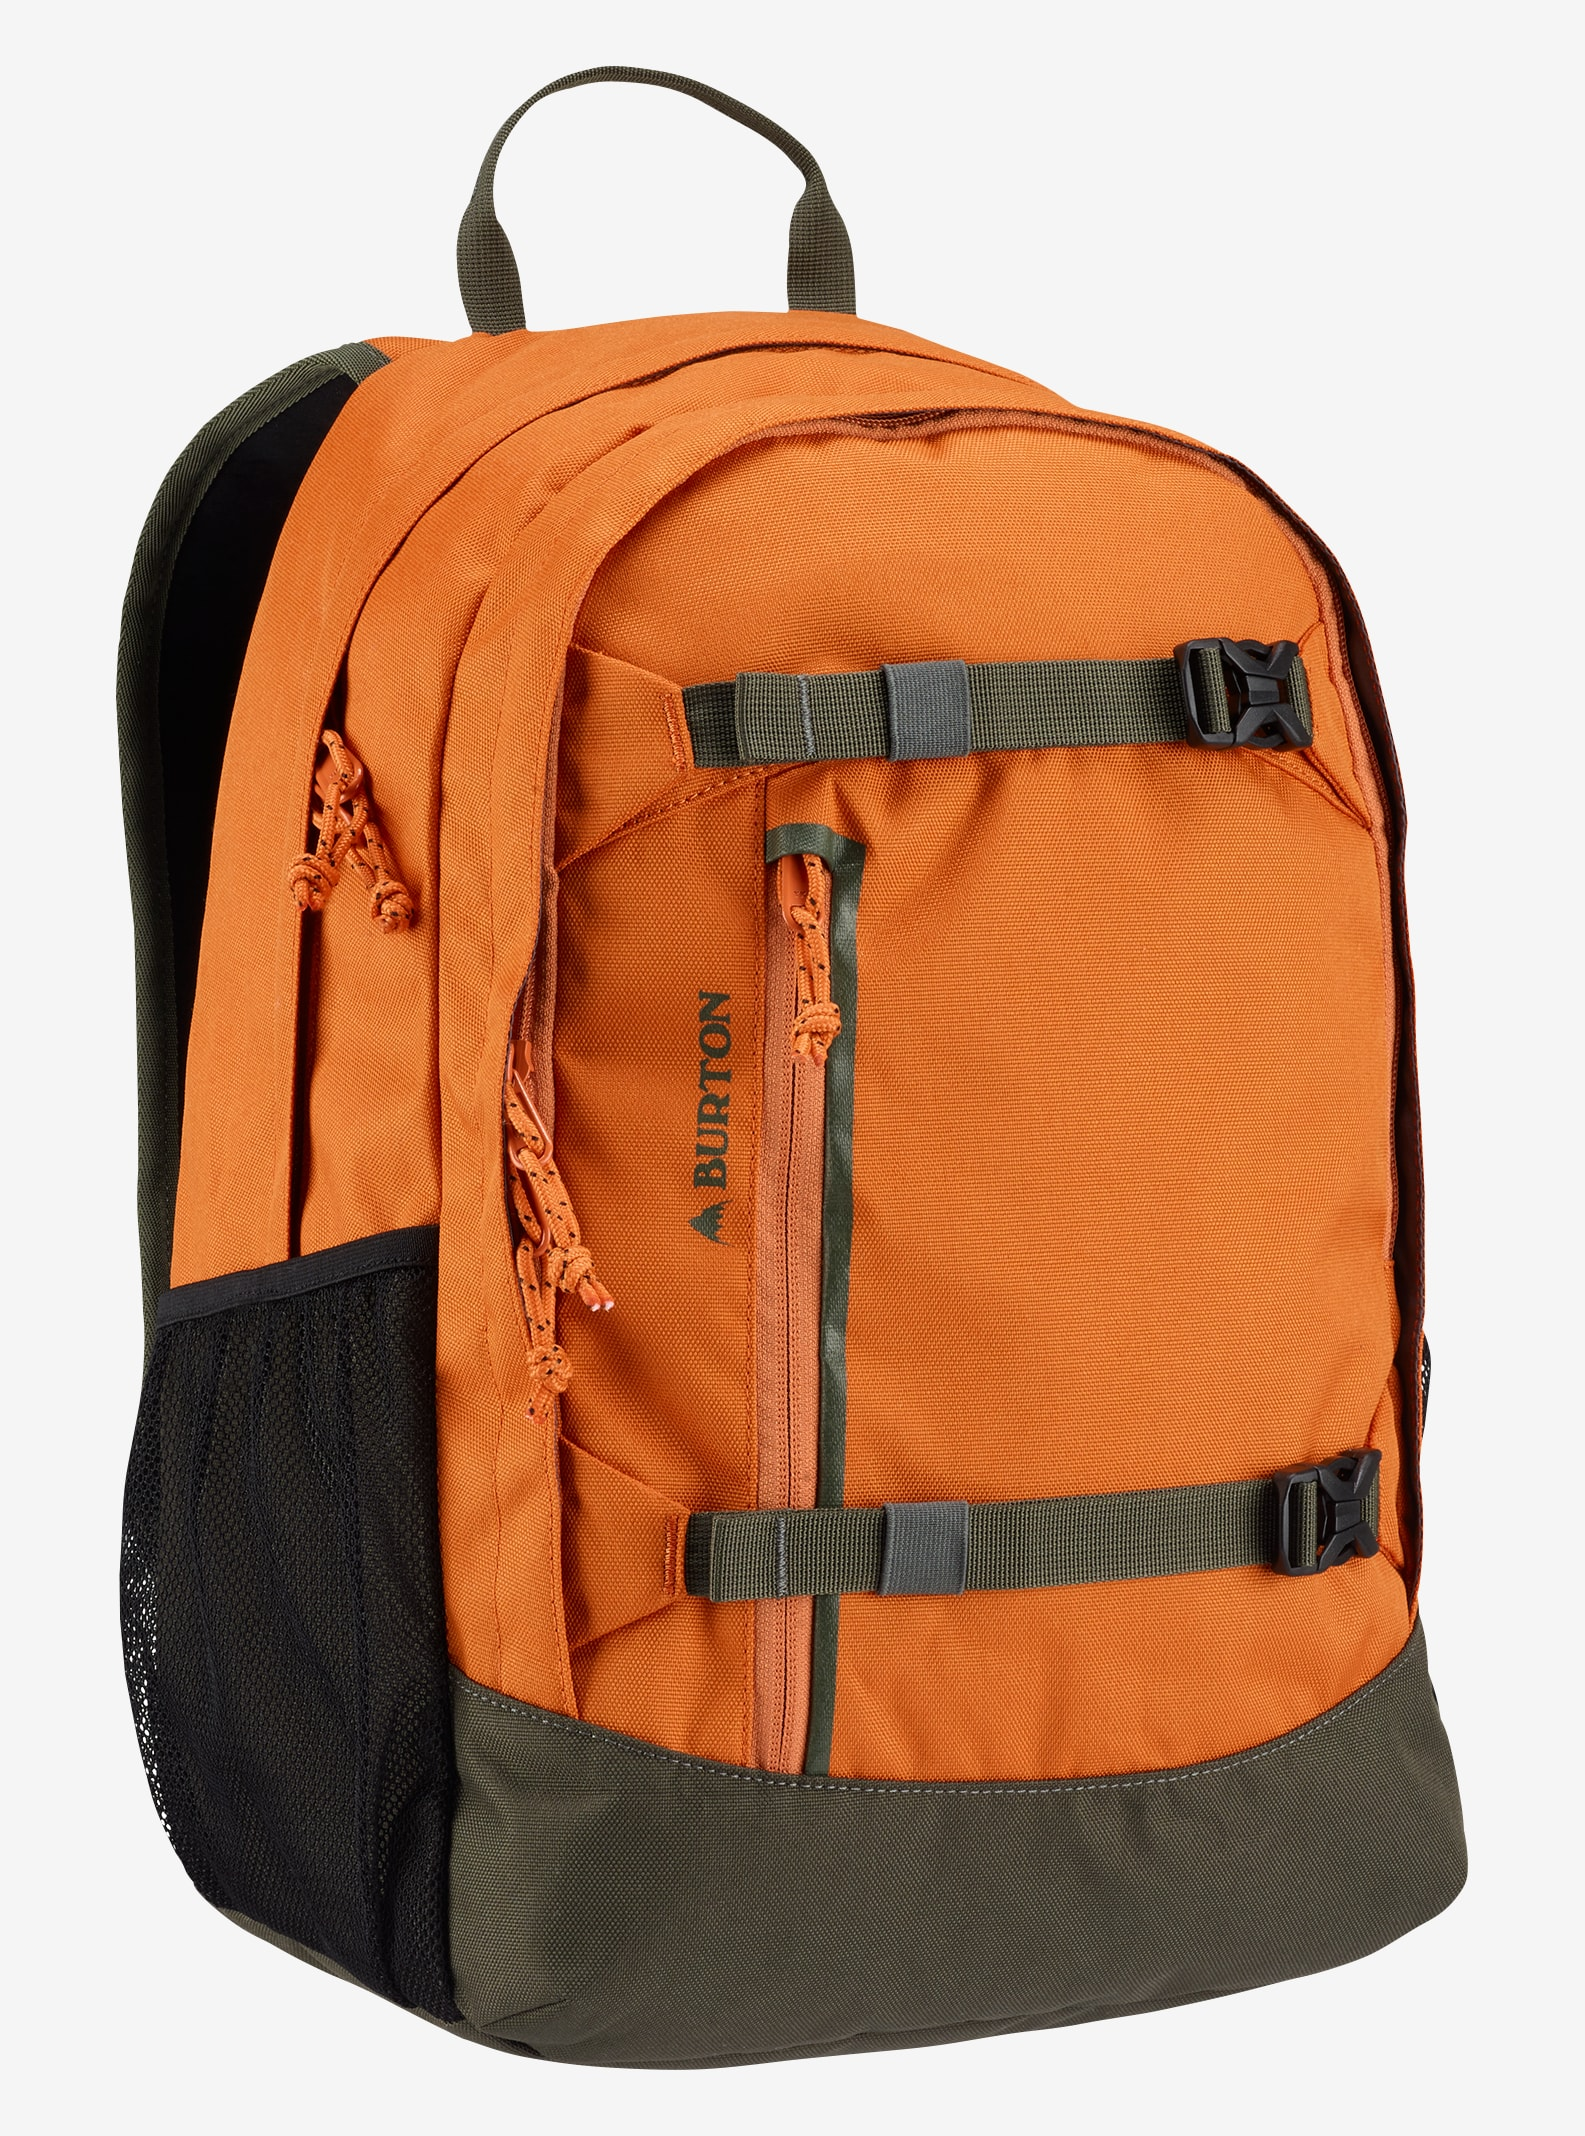 Burton Kids' Day Hiker 20L Backpack shown in Maui Sunset